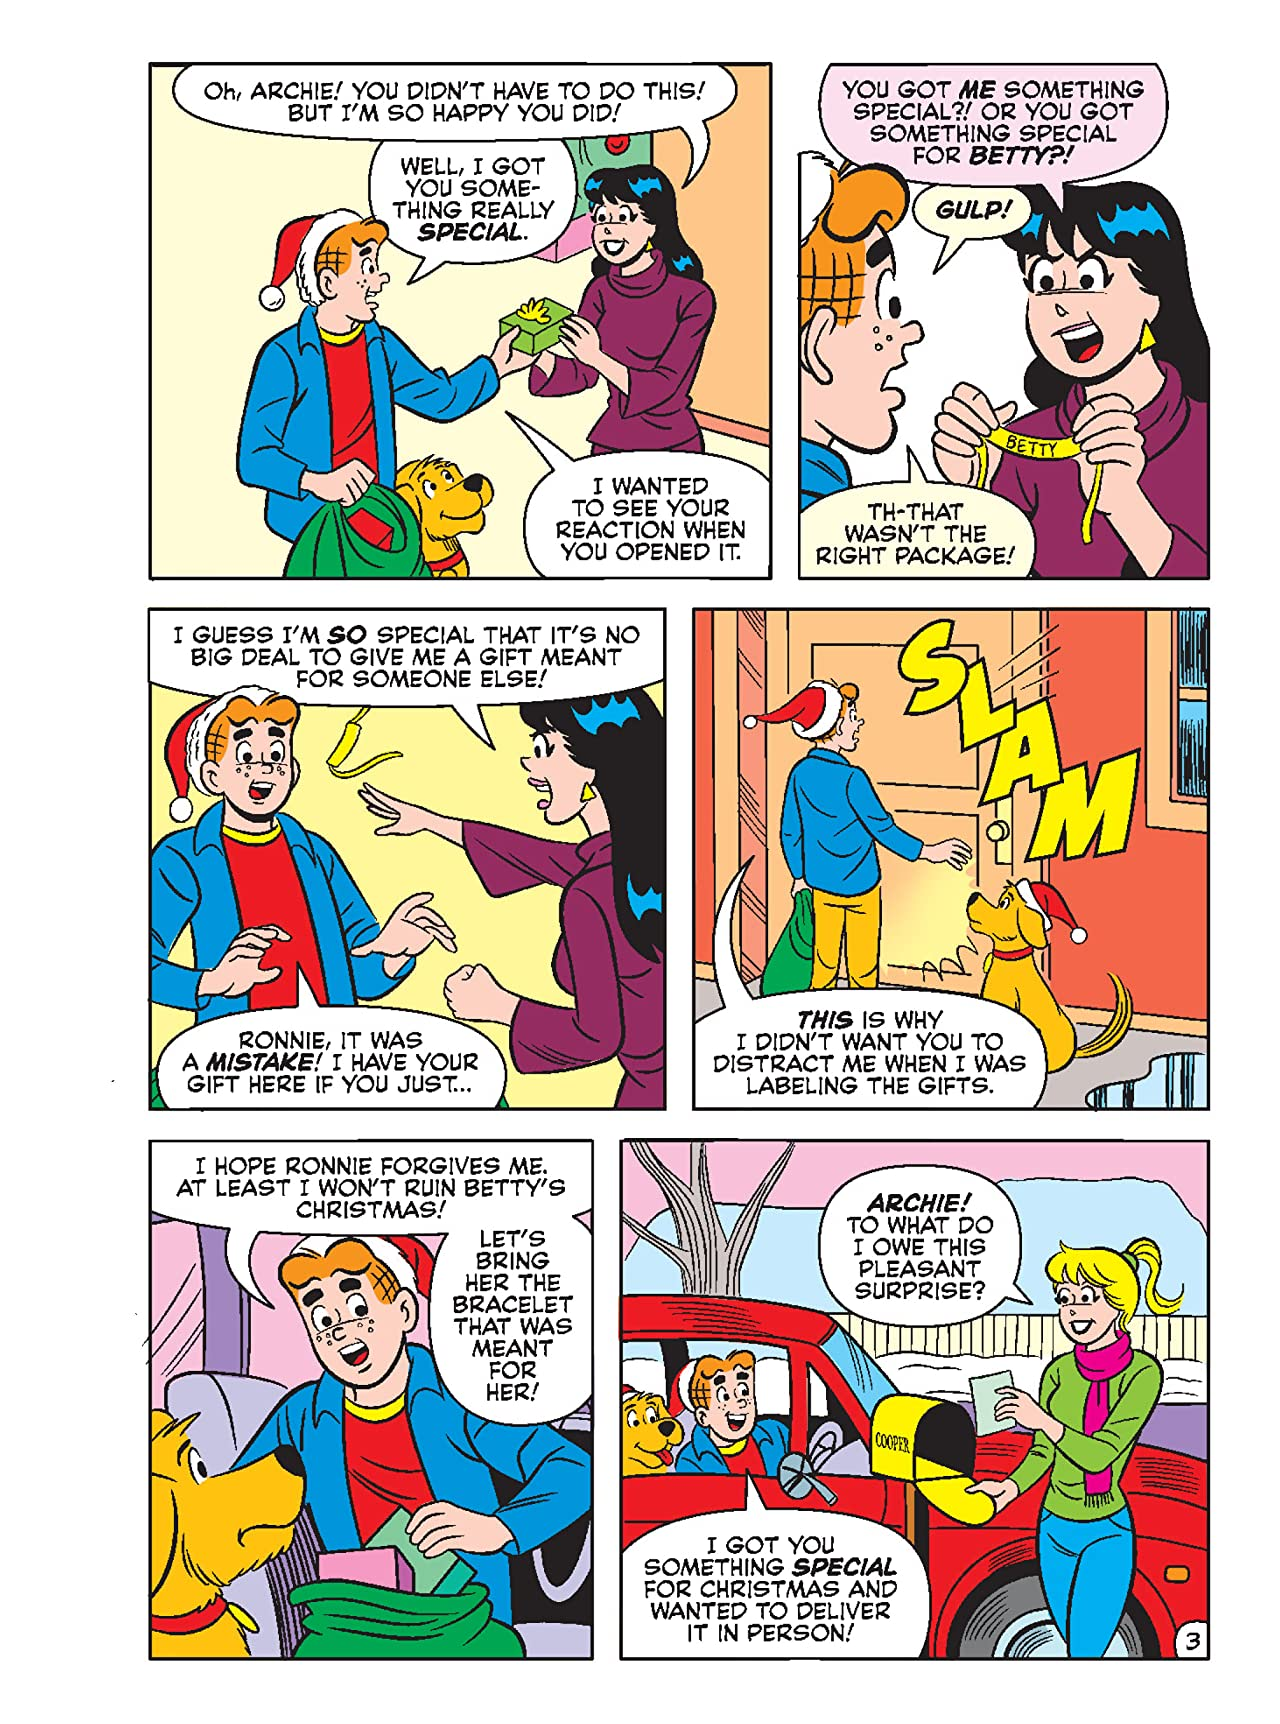 World of Archie Double Digest #94